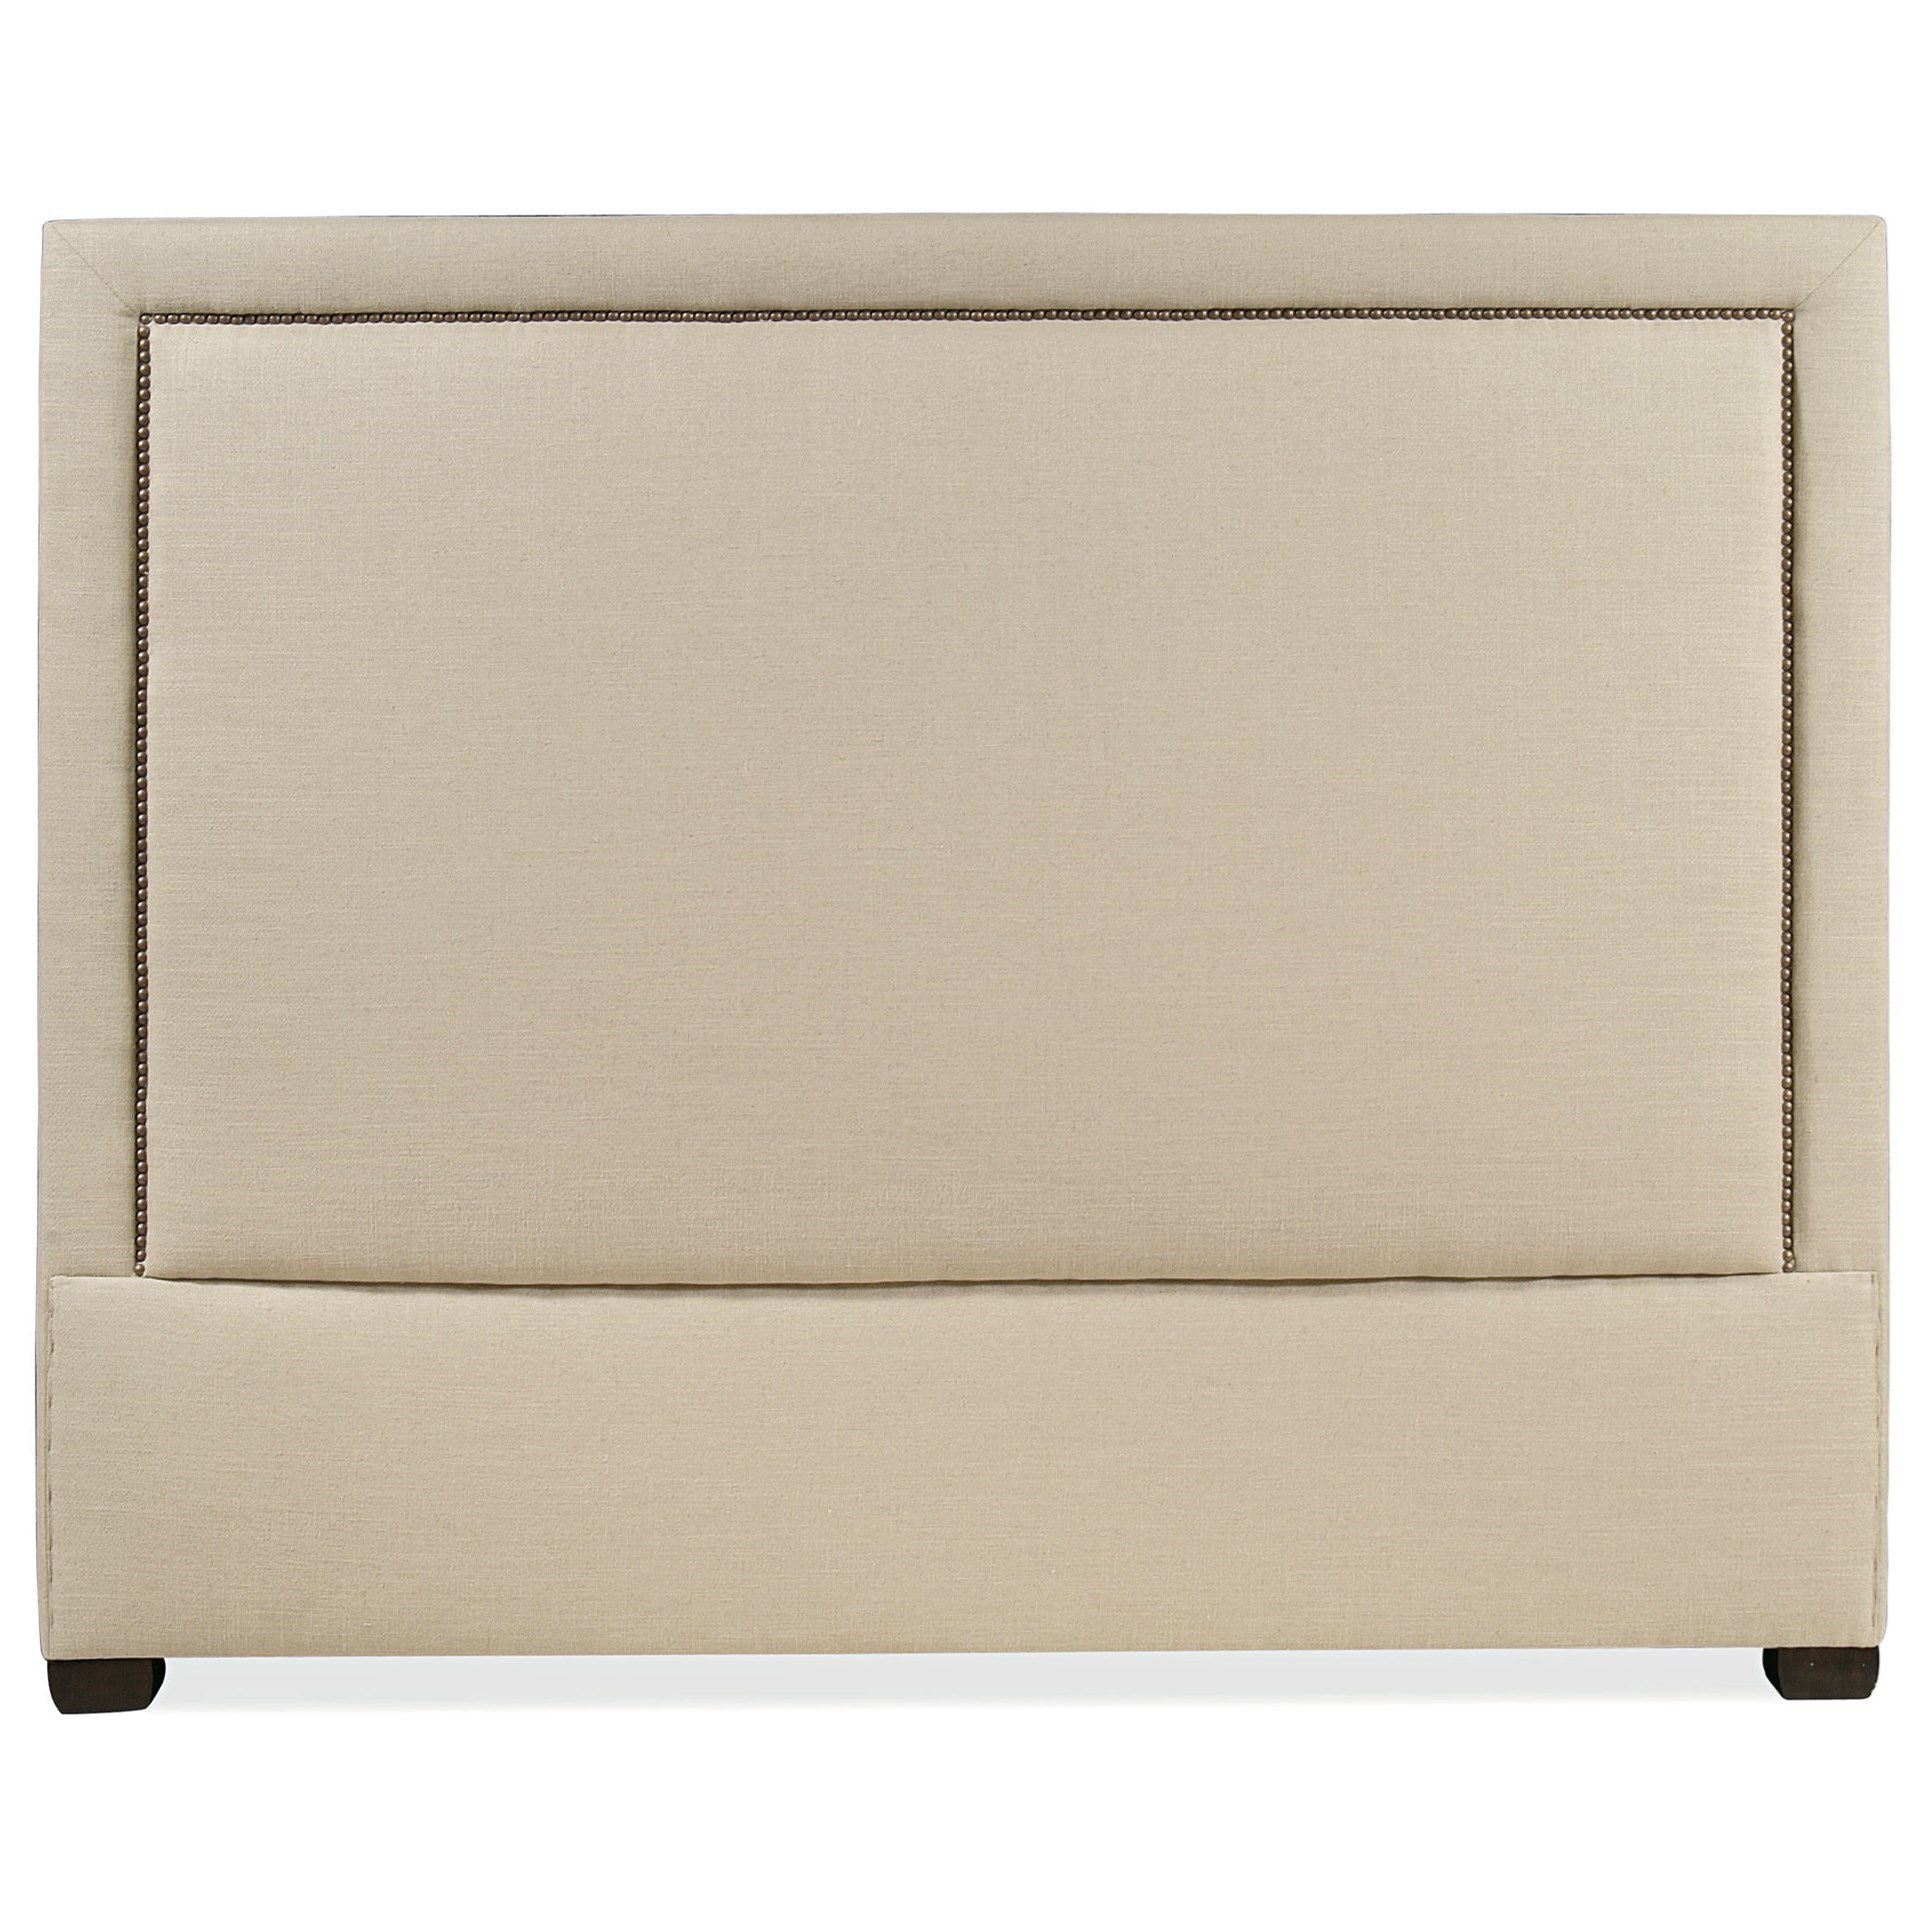 Making An Upholstered Headboard With Nailhead Trim Interiors Morgan Full Upholstered Panel Headboard With Nailhead Trim By Bernhardt At Dunk Bright Furniture